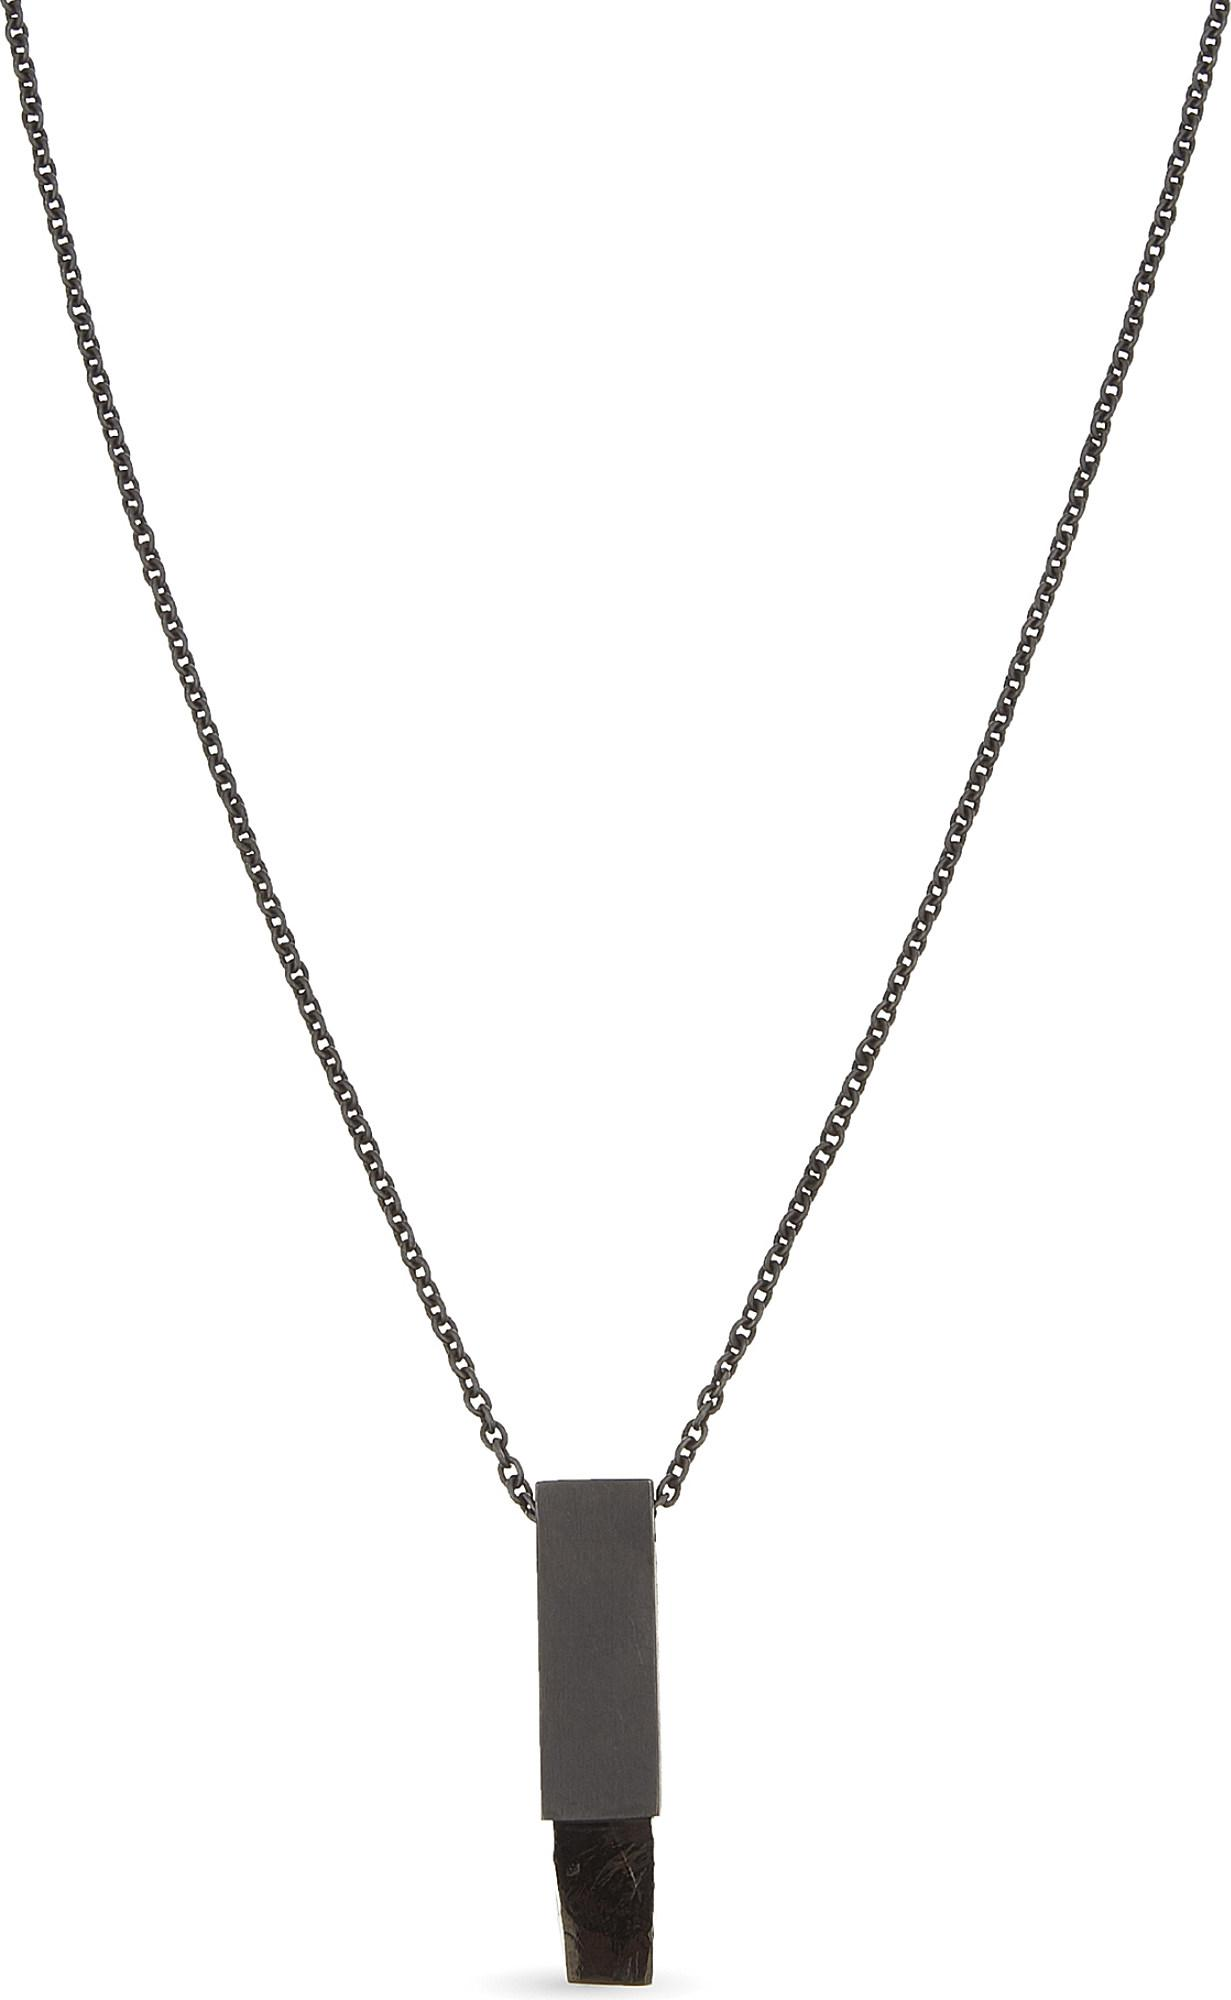 Lyst - Parts of 4 Amulet Cuboid Shungite Necklace in Metallic